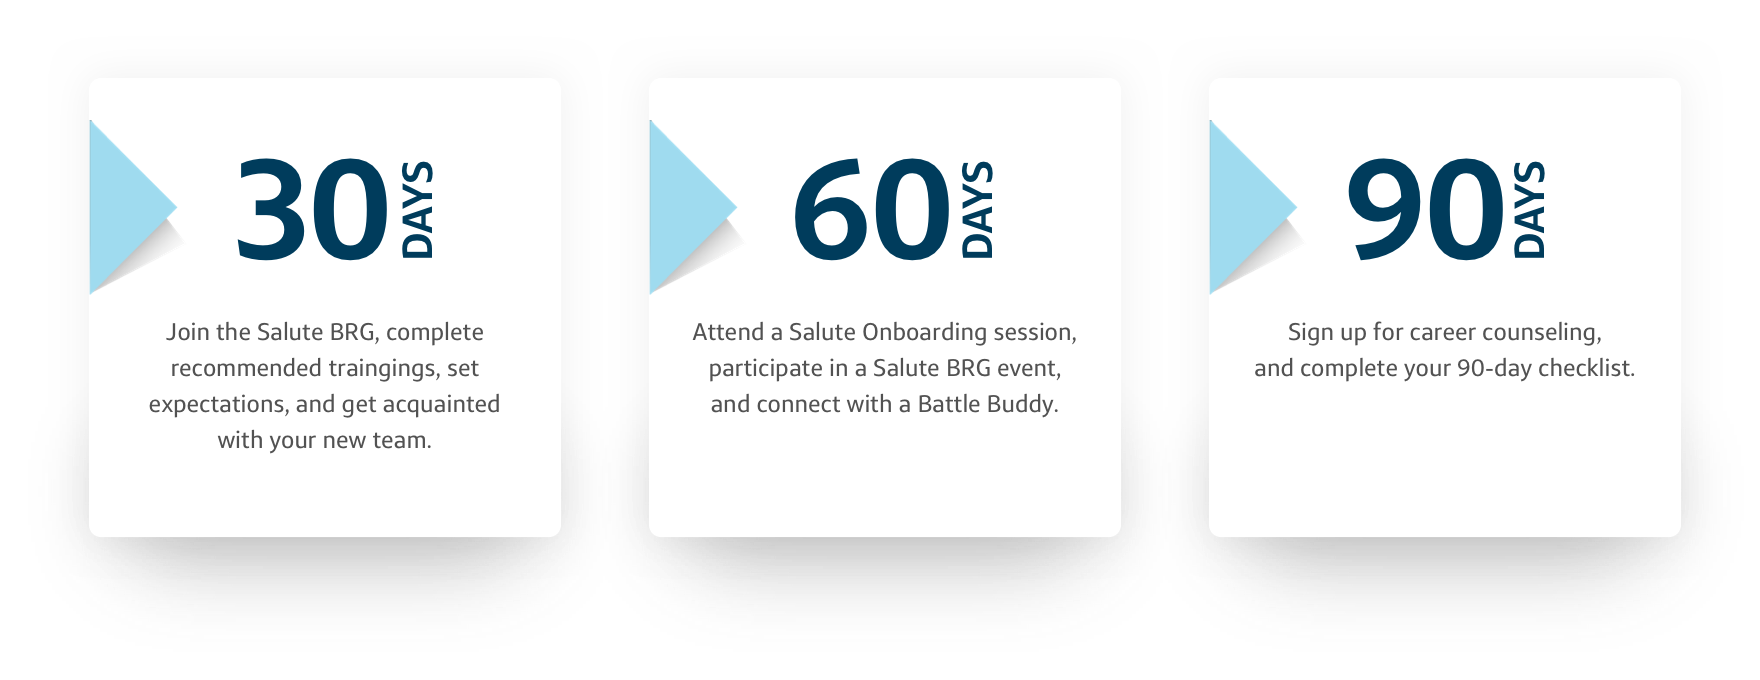 Infographic of Capital One Military 30 60 90 Day program for new associates